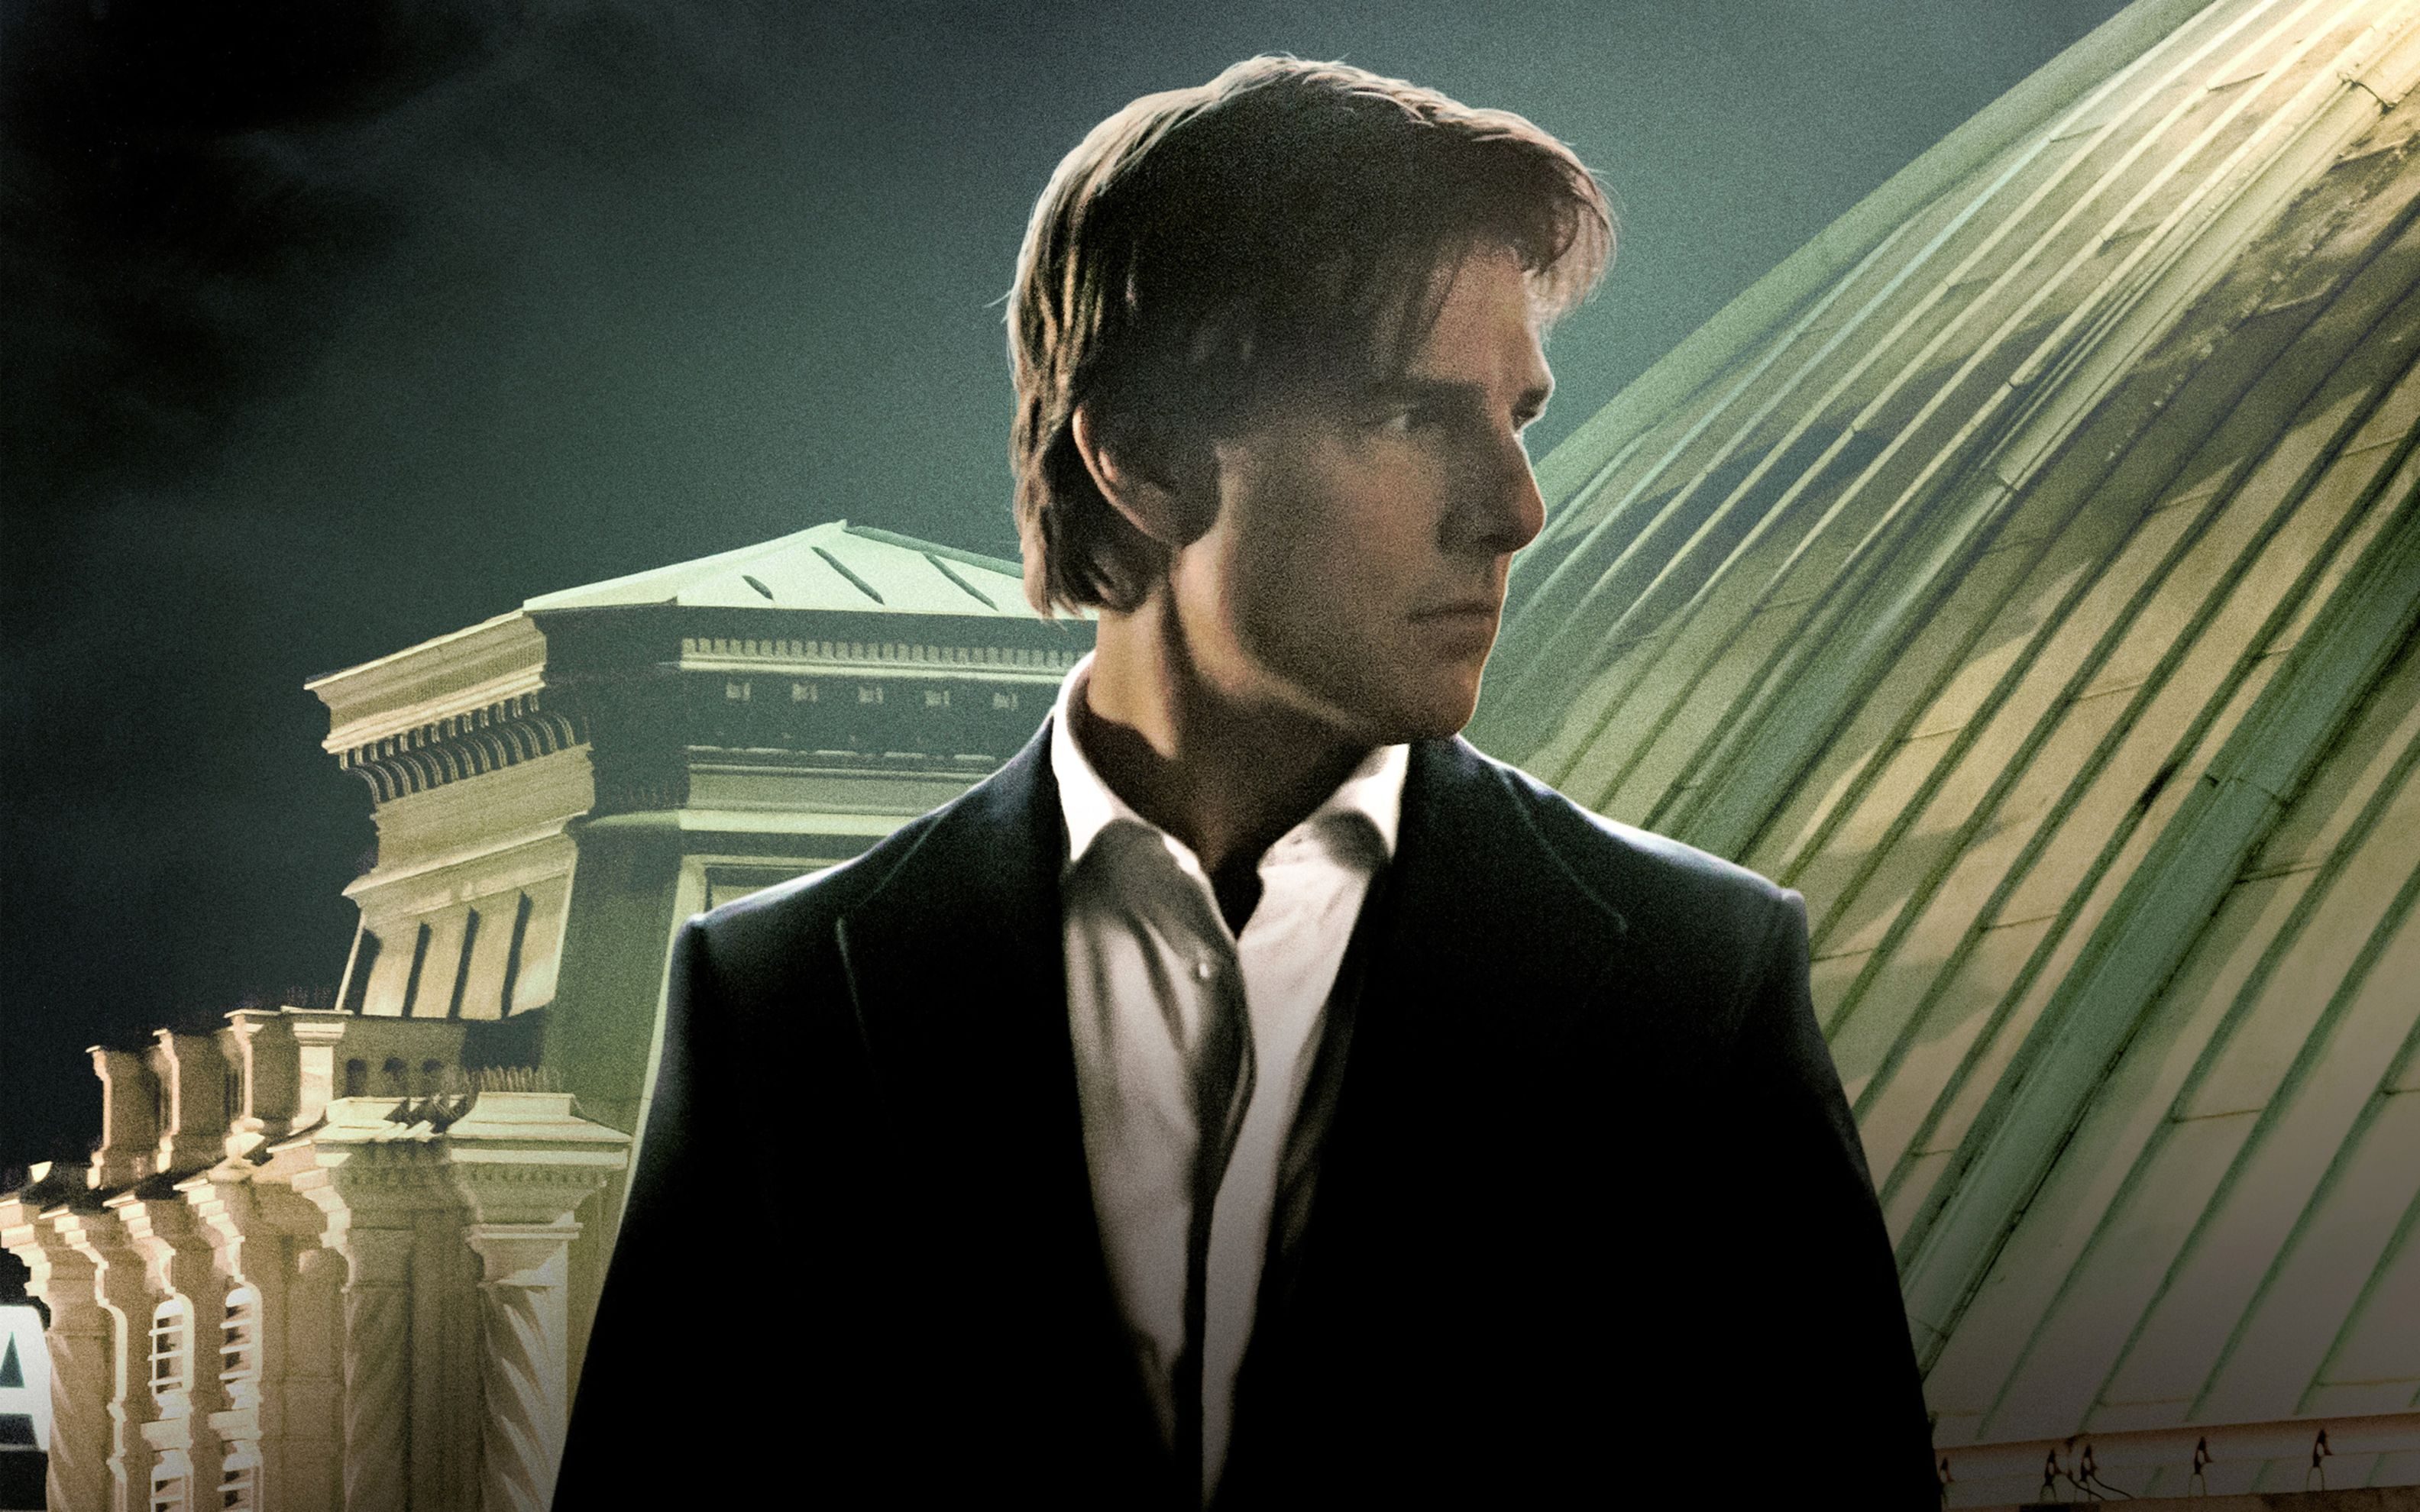 Download free HD Mission Impossible Rogue Nation Tom Cruise Wide Wallpaper, image